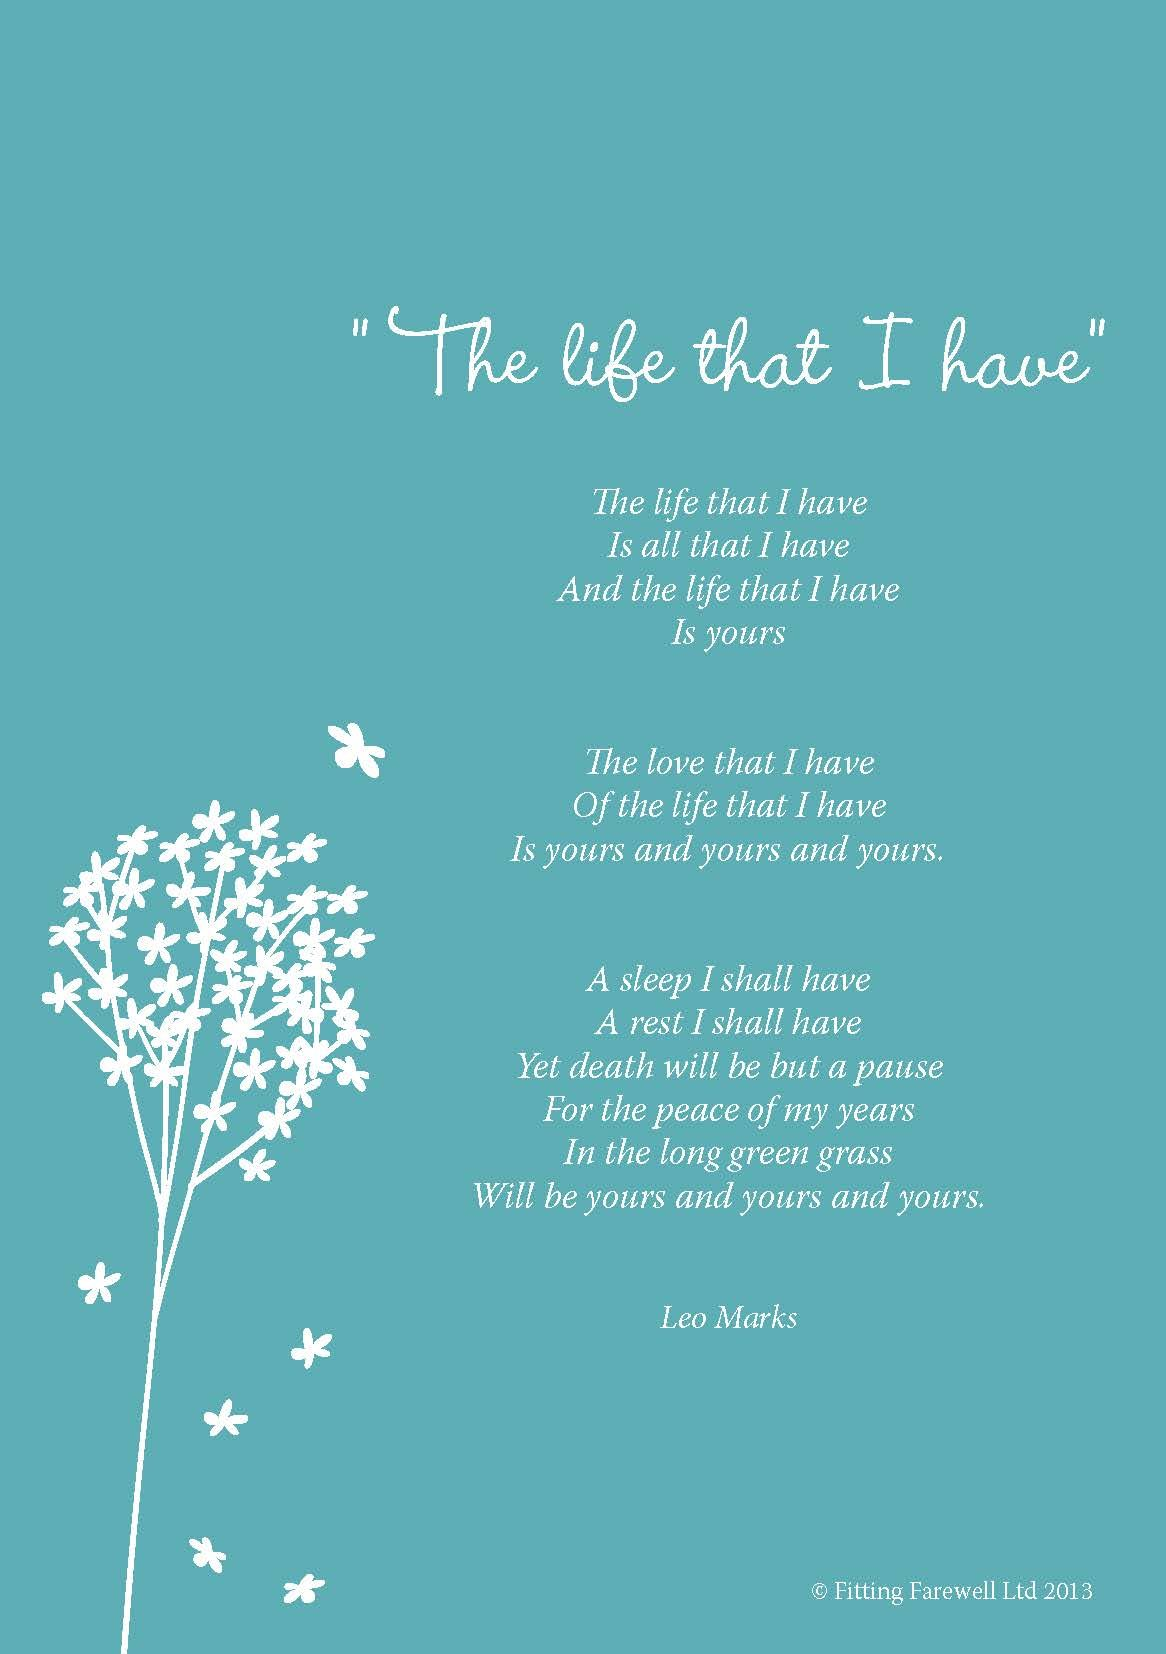 Funeral Poem The life that I have by Leo Marks